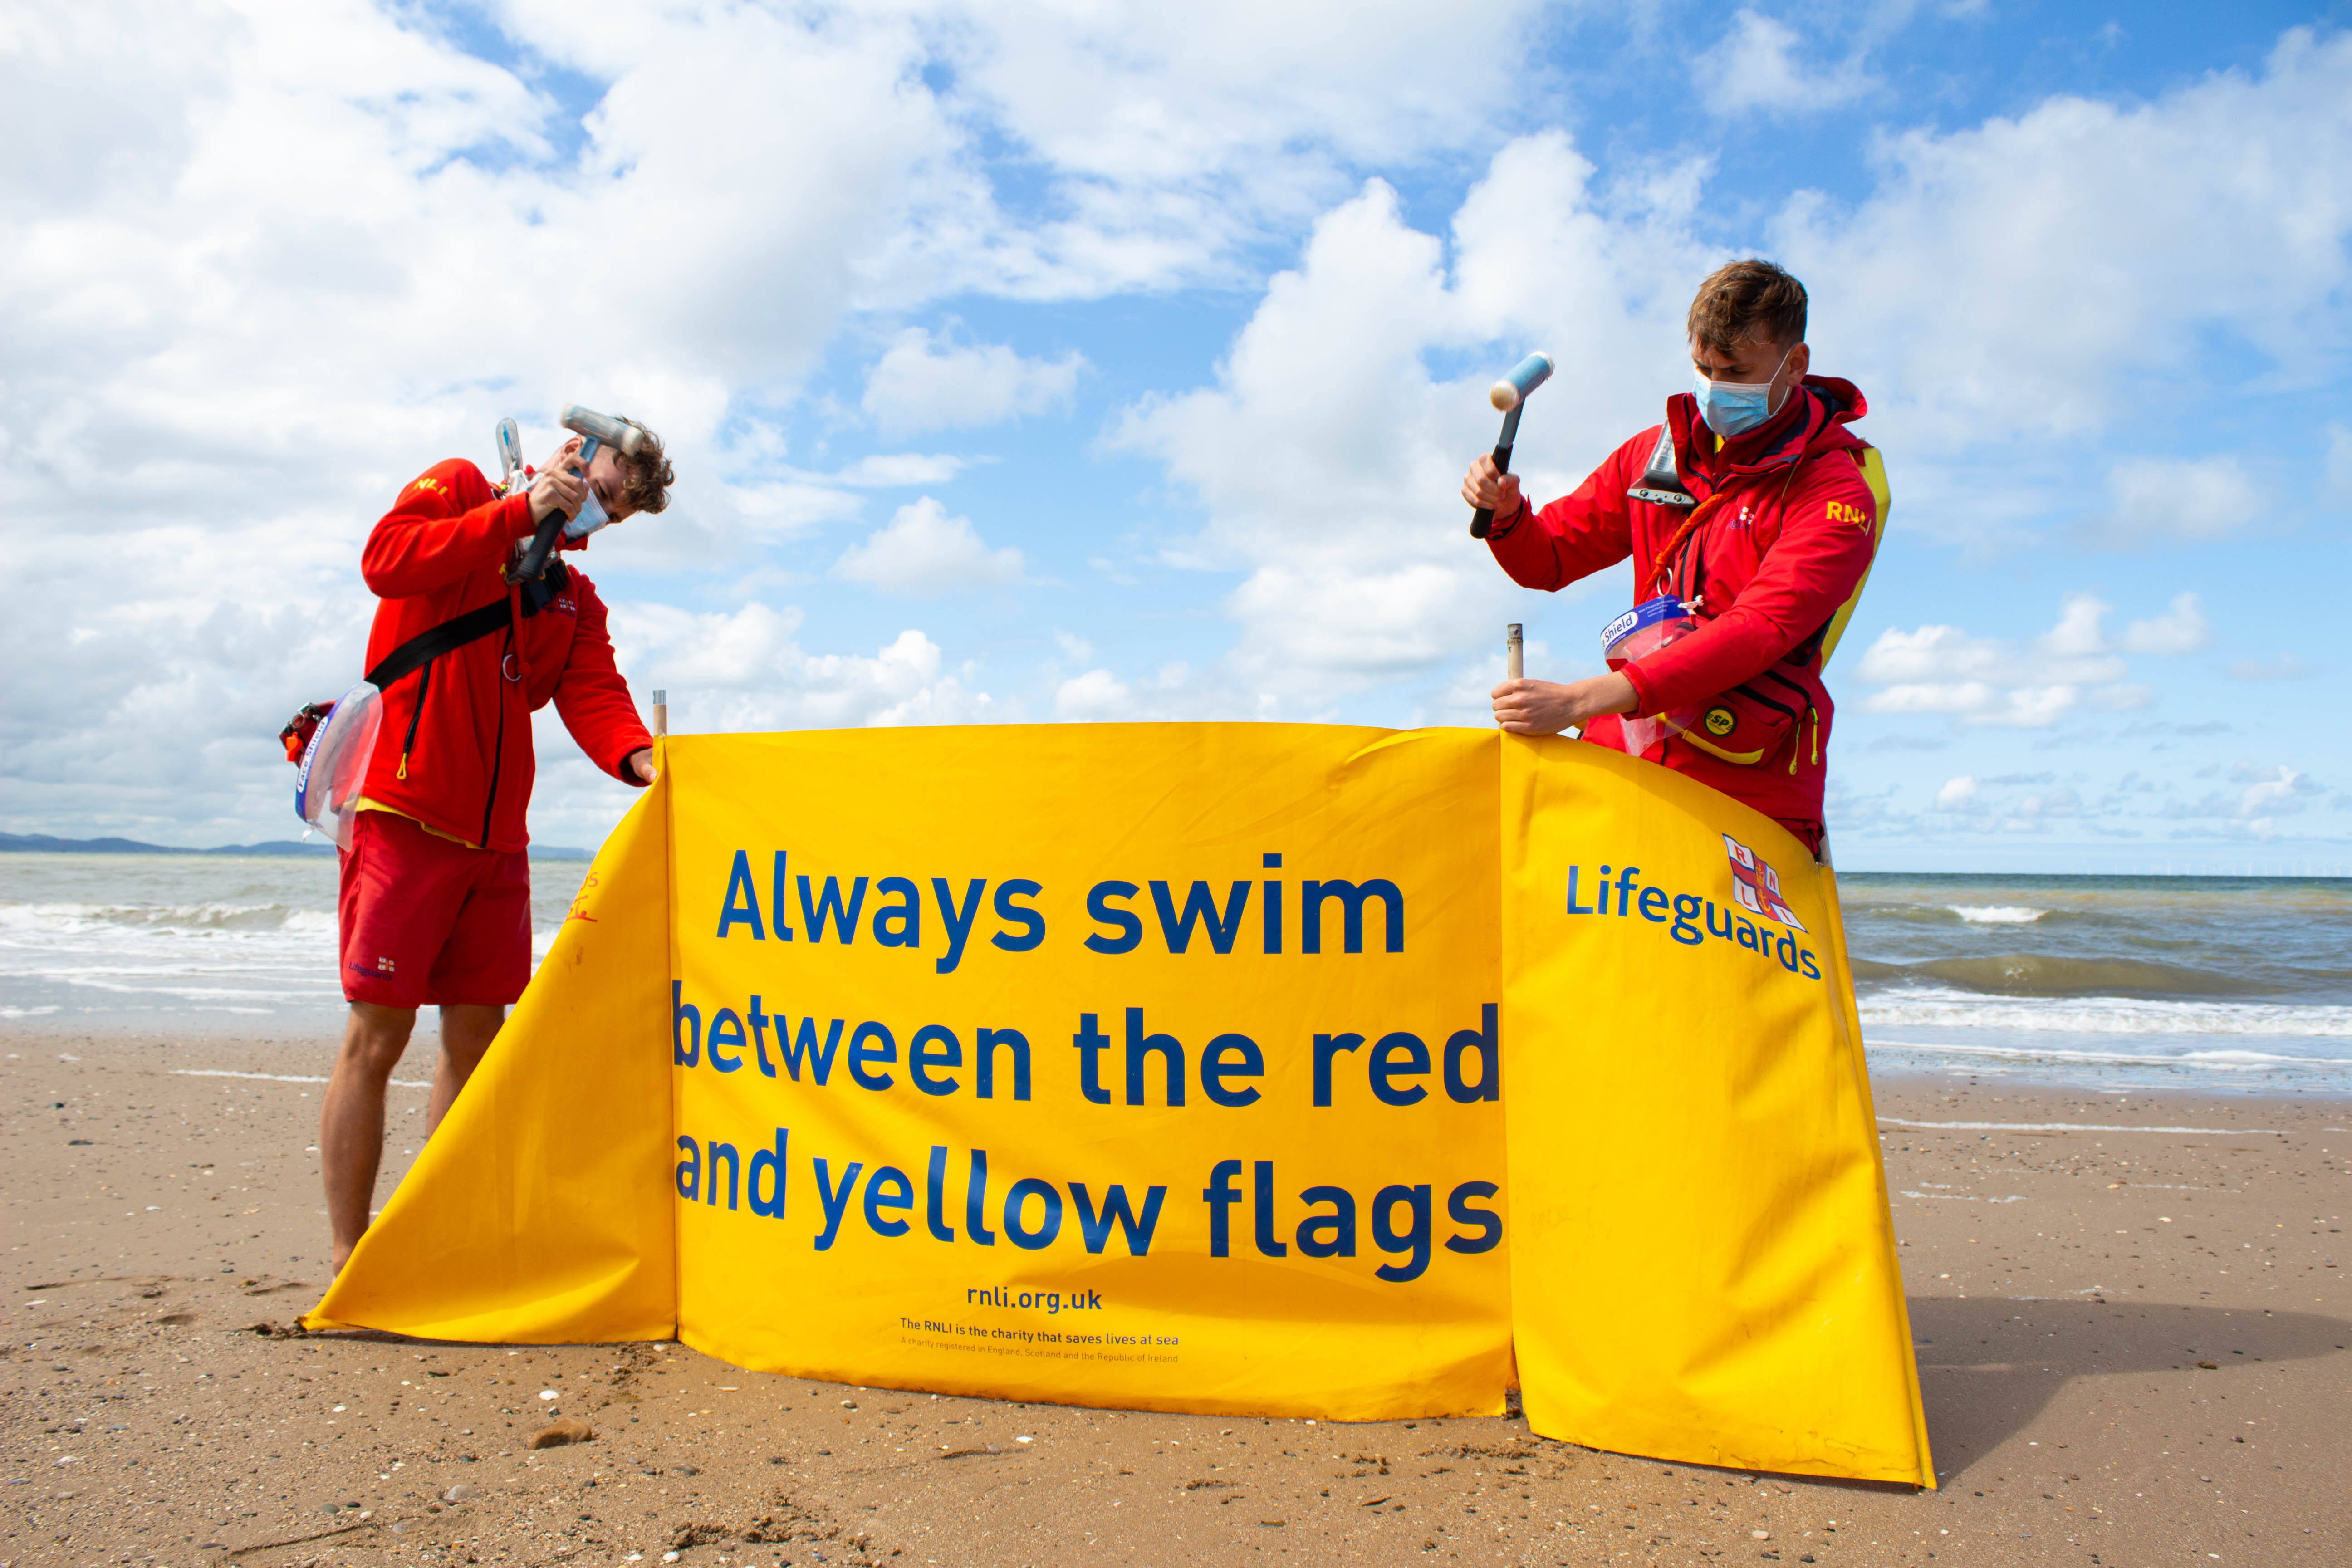 RNLI lifeguards putting up safety signage at the start of their daily patrol